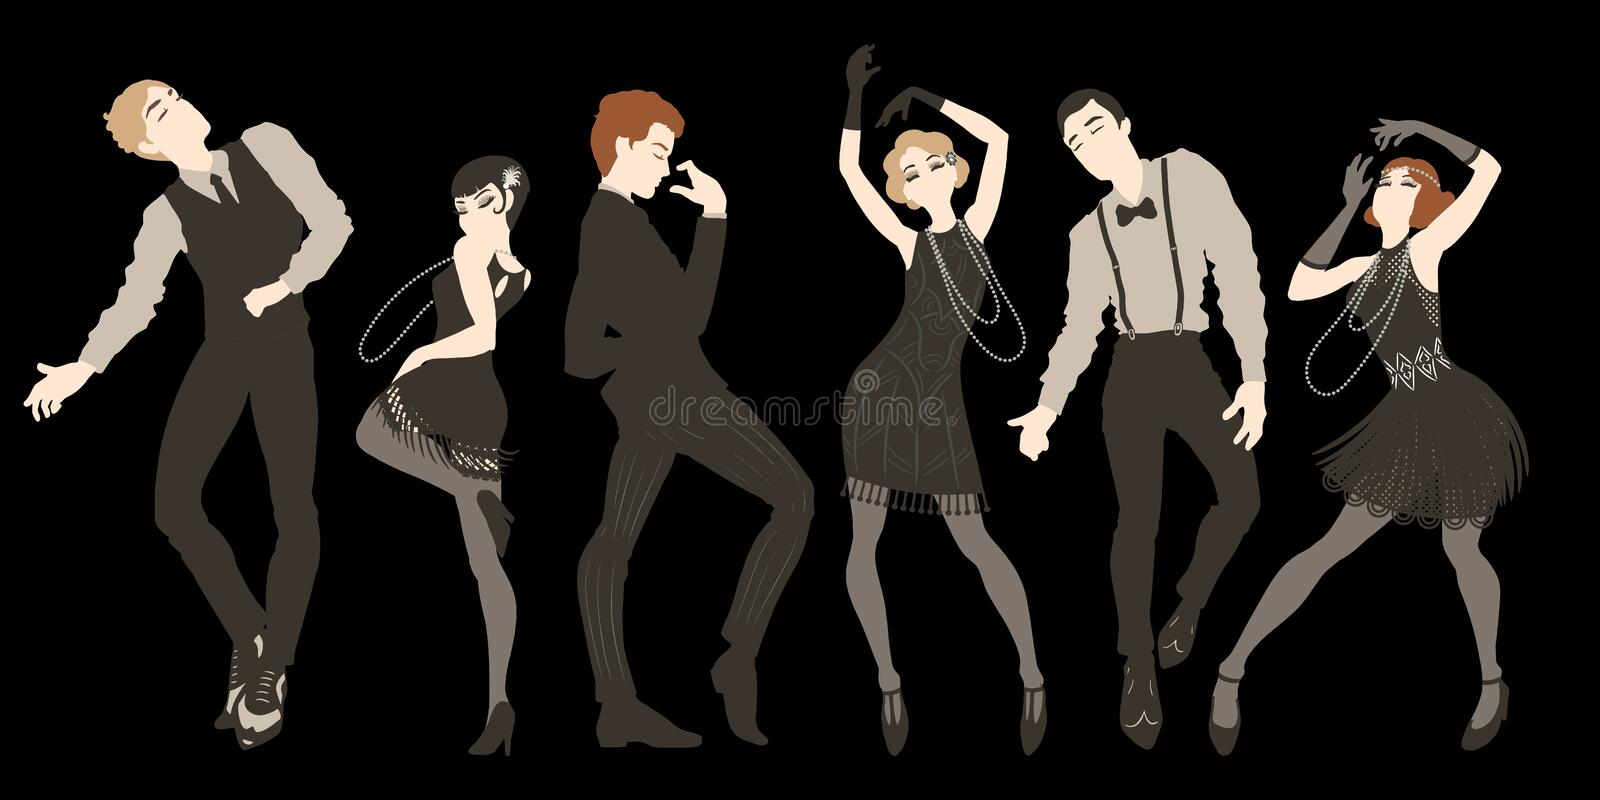 Retro party set, men and women dressed in 1920s style dancing, flapper girls, handsome guys in vintage suits, twenties, vector stock illustration